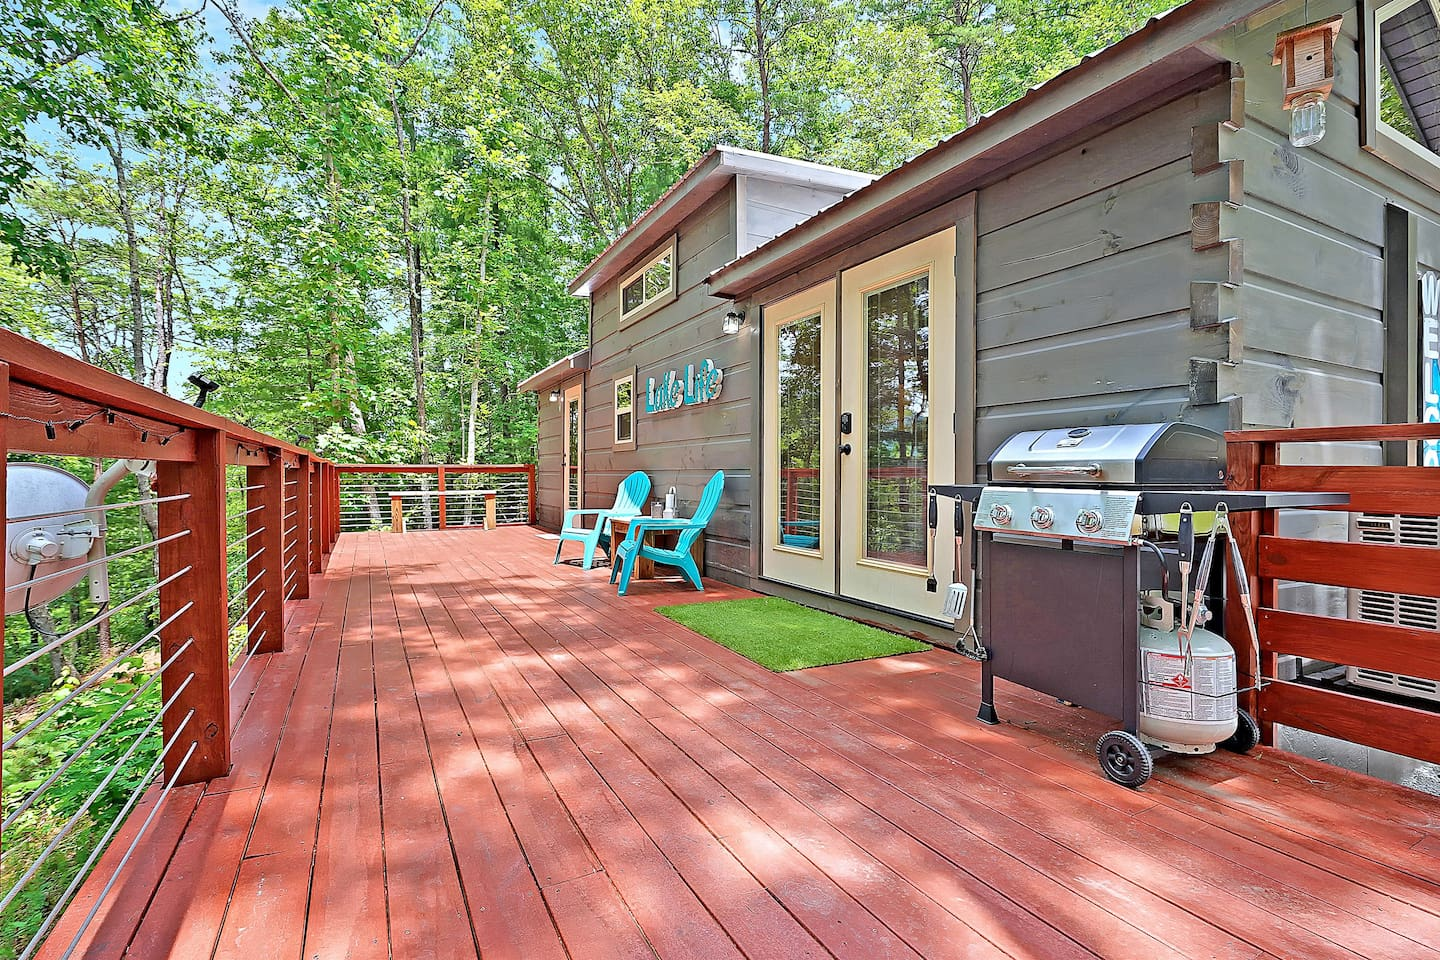 Relax on the 400 sq ft deck with BBQ grill, chairs and patio table led lighting all with great views!